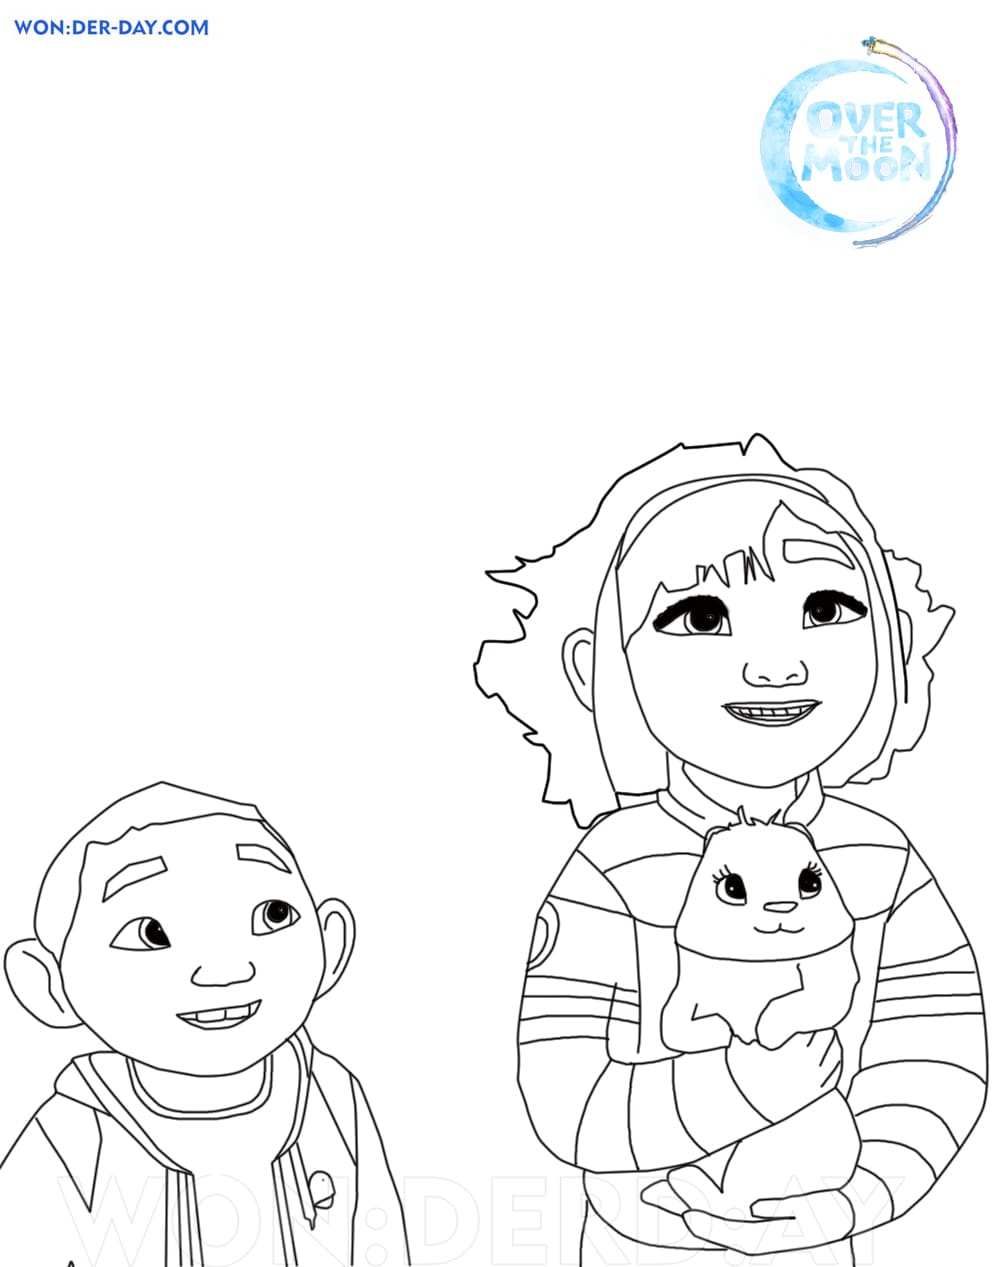 Over the Moon Coloring pages. Printable Coloring pages